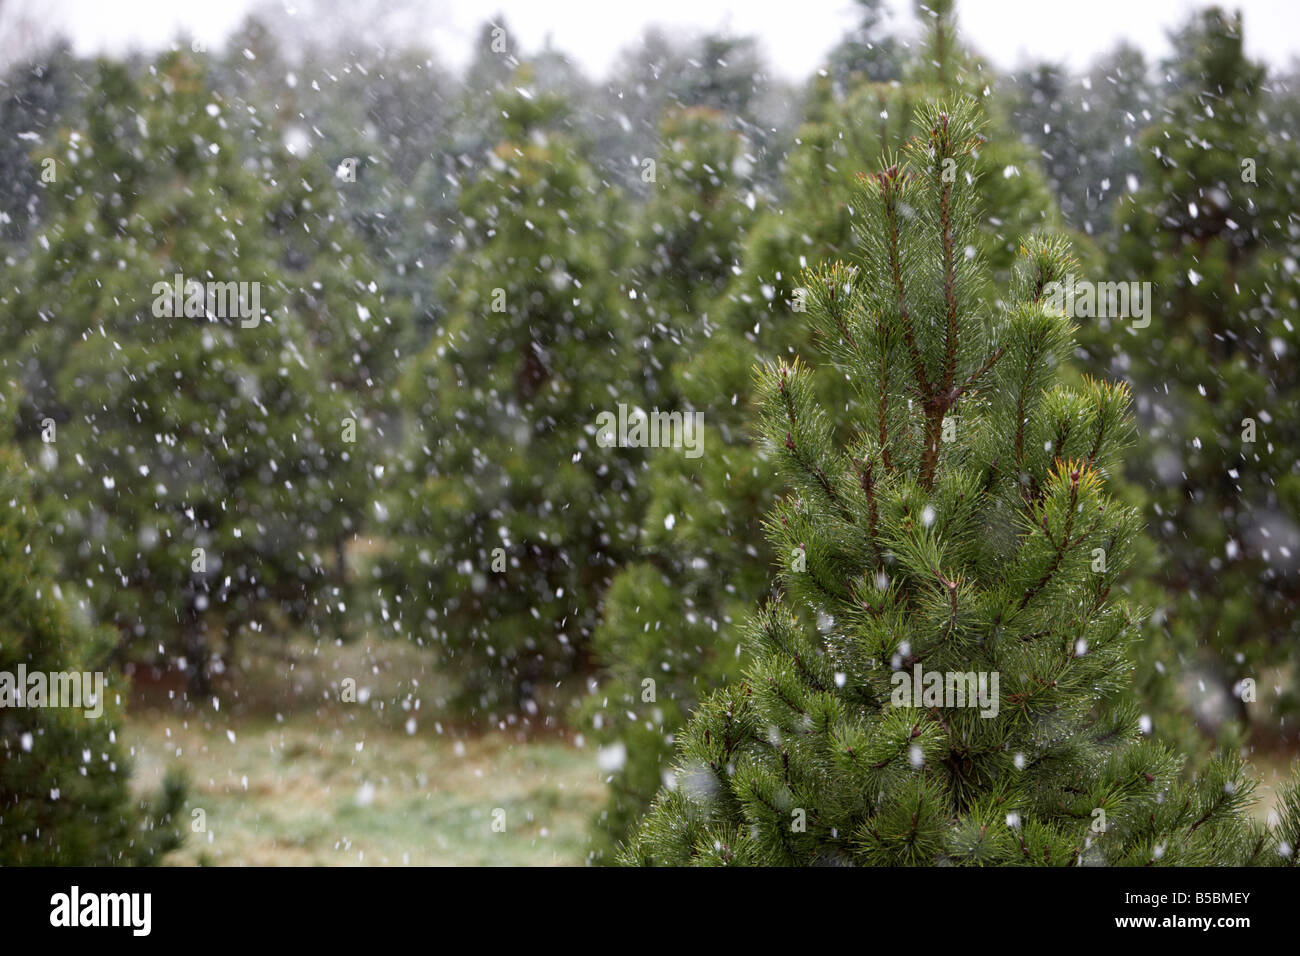 Christmas tree farm in the snow county antrim northern ireland uk - Stock Image